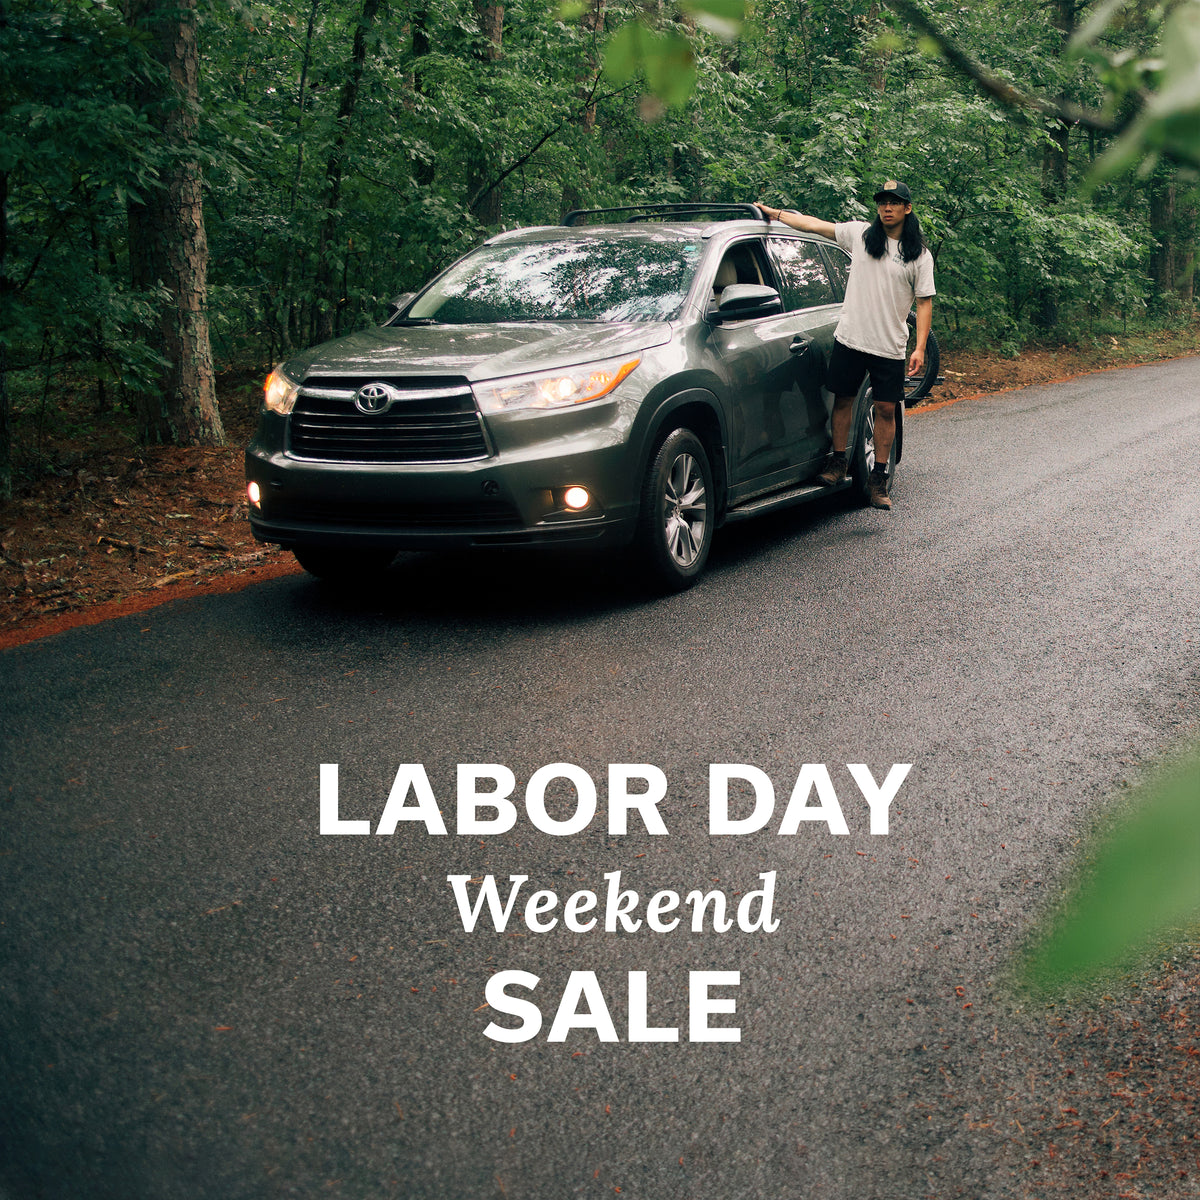 Save Up to 25% During Our Labor Day Weekend Sale